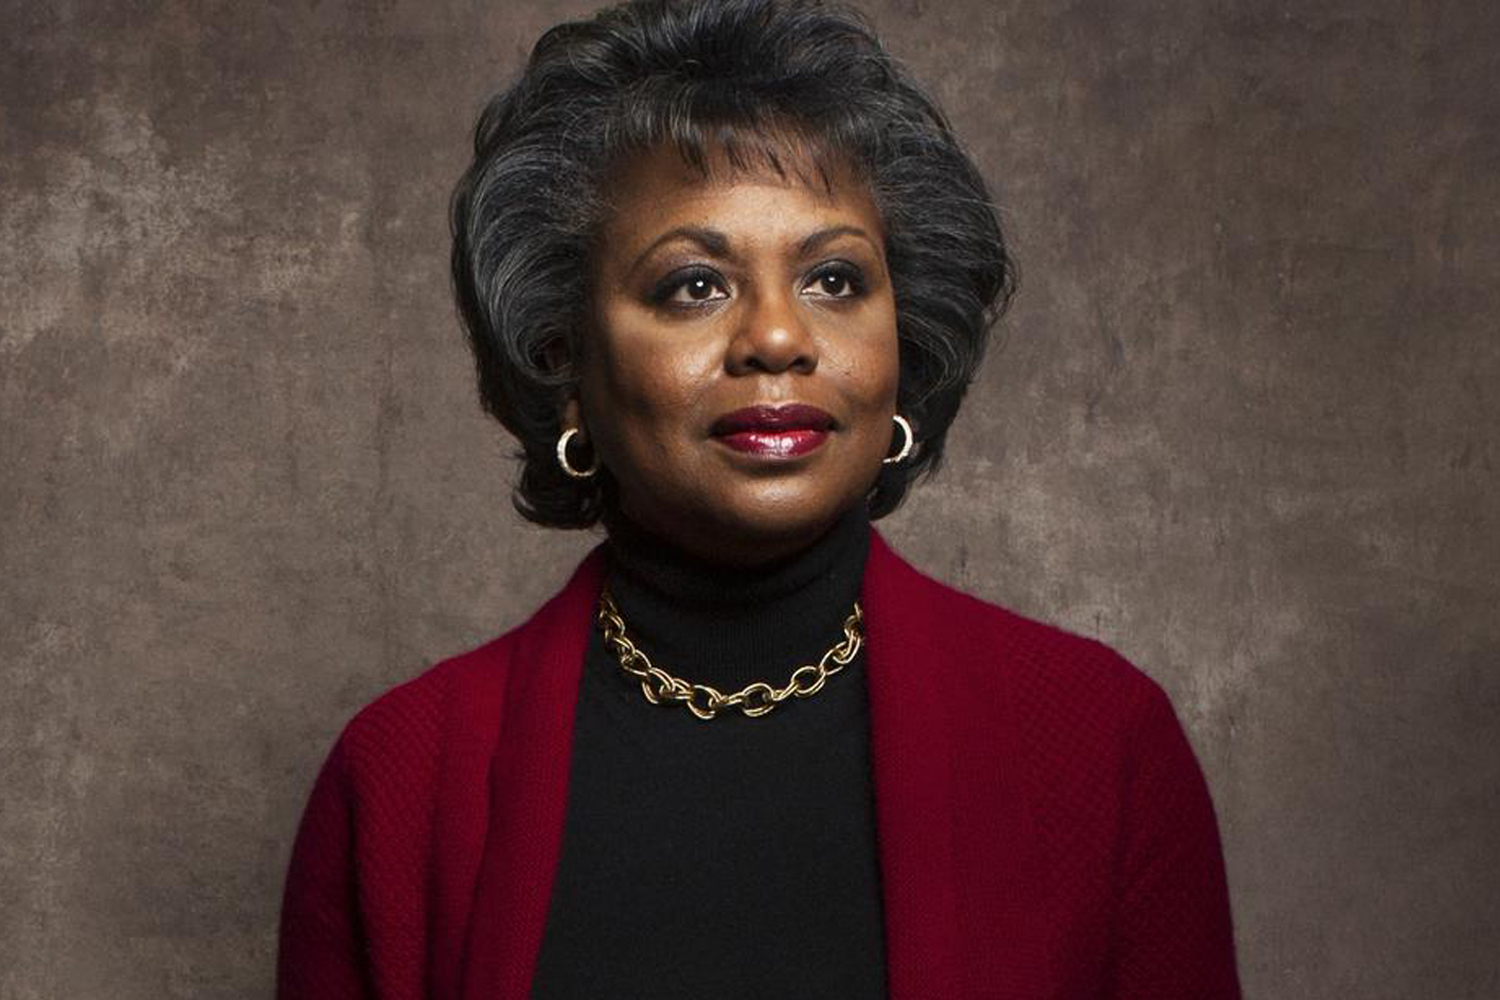 Any unclaimed tickets to Anita Hill's speech on Jan. 26 will be released at 6:20 p.m. at the door to people in the standby line.